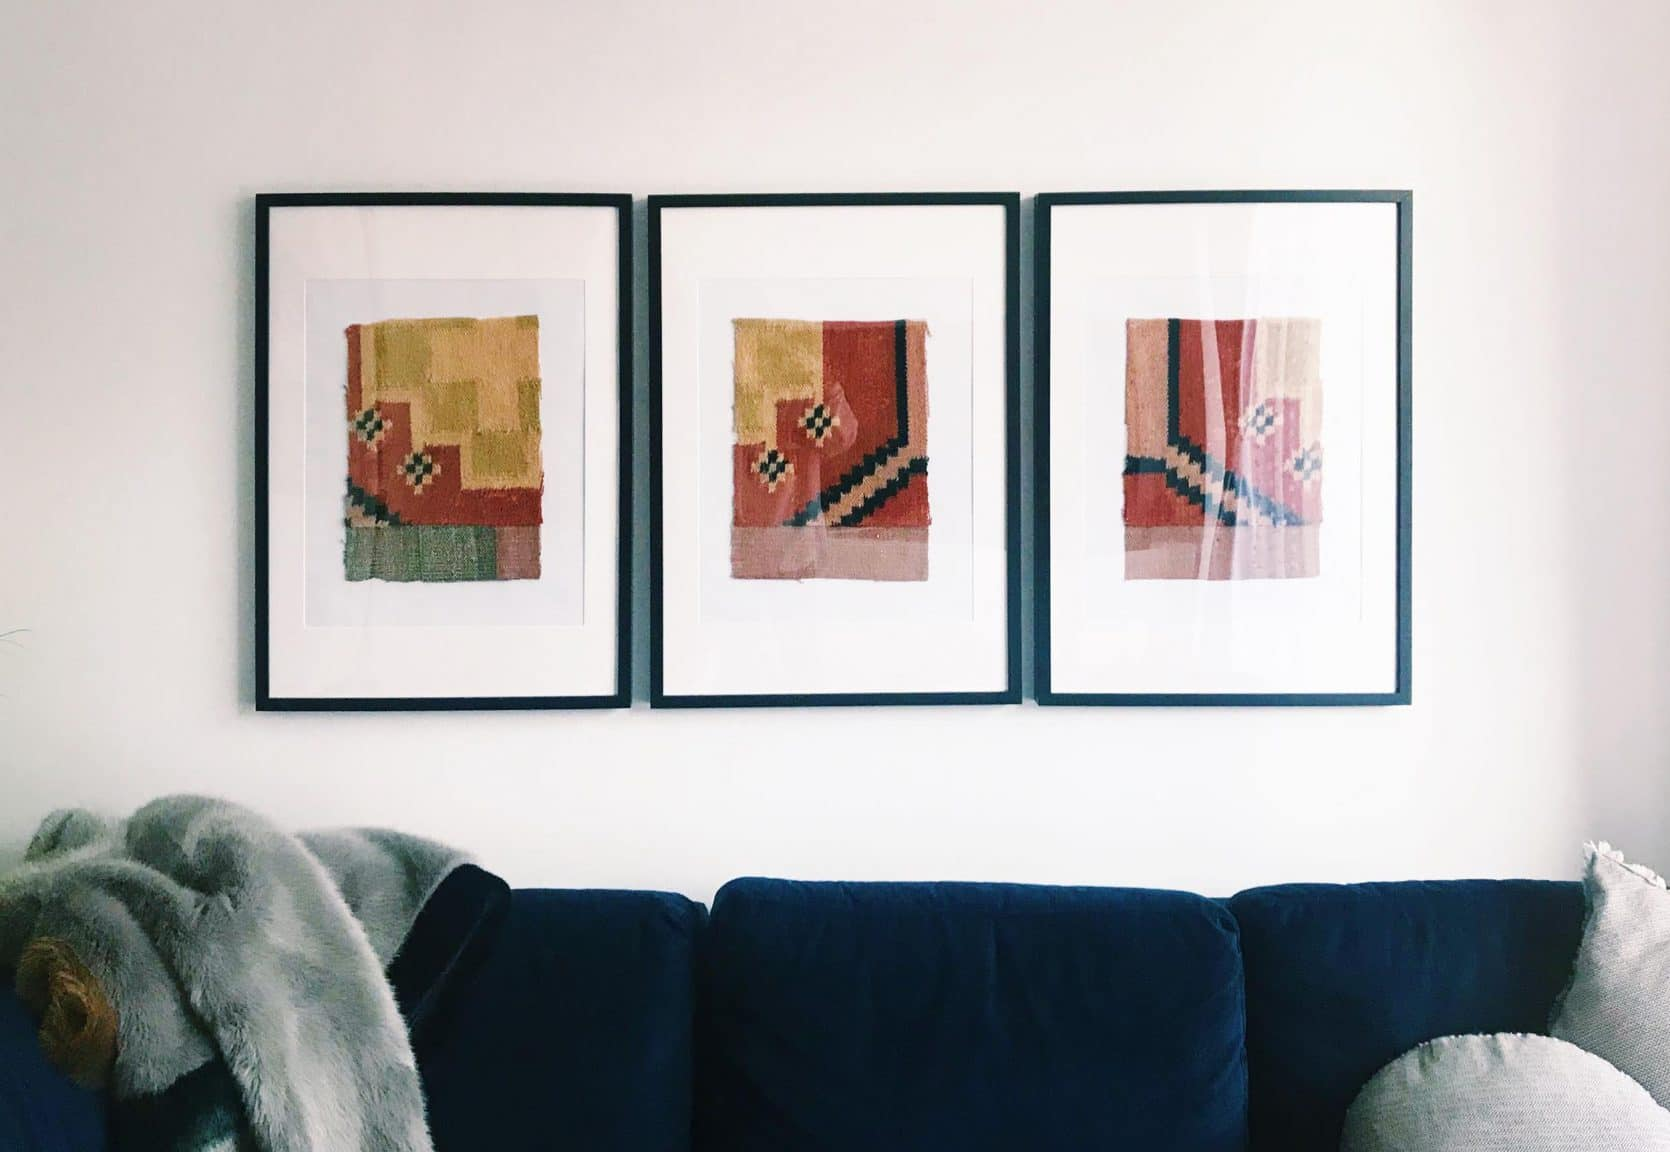 Framed pillows from Emily Funk